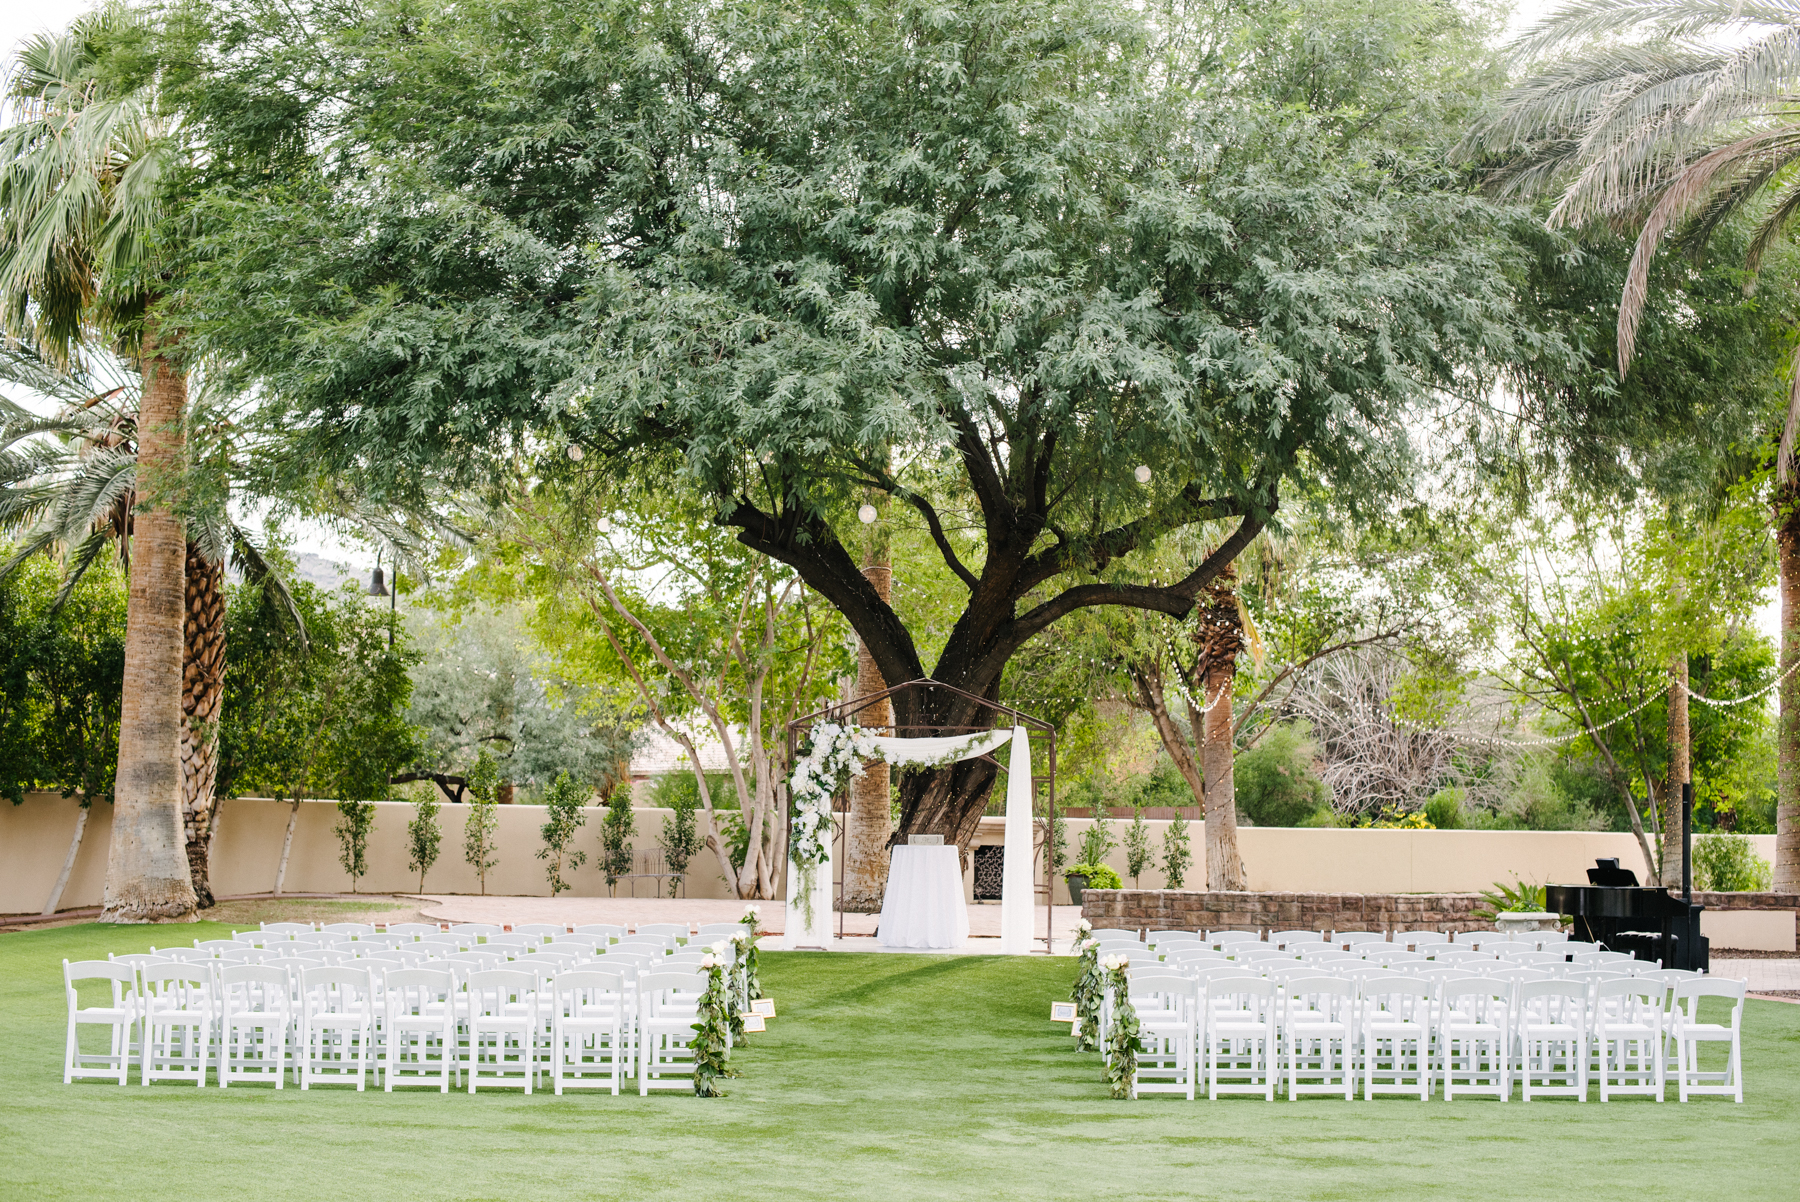 Secret Garden Event Center Wedding - Meredith Amadee Photography-70.jpg